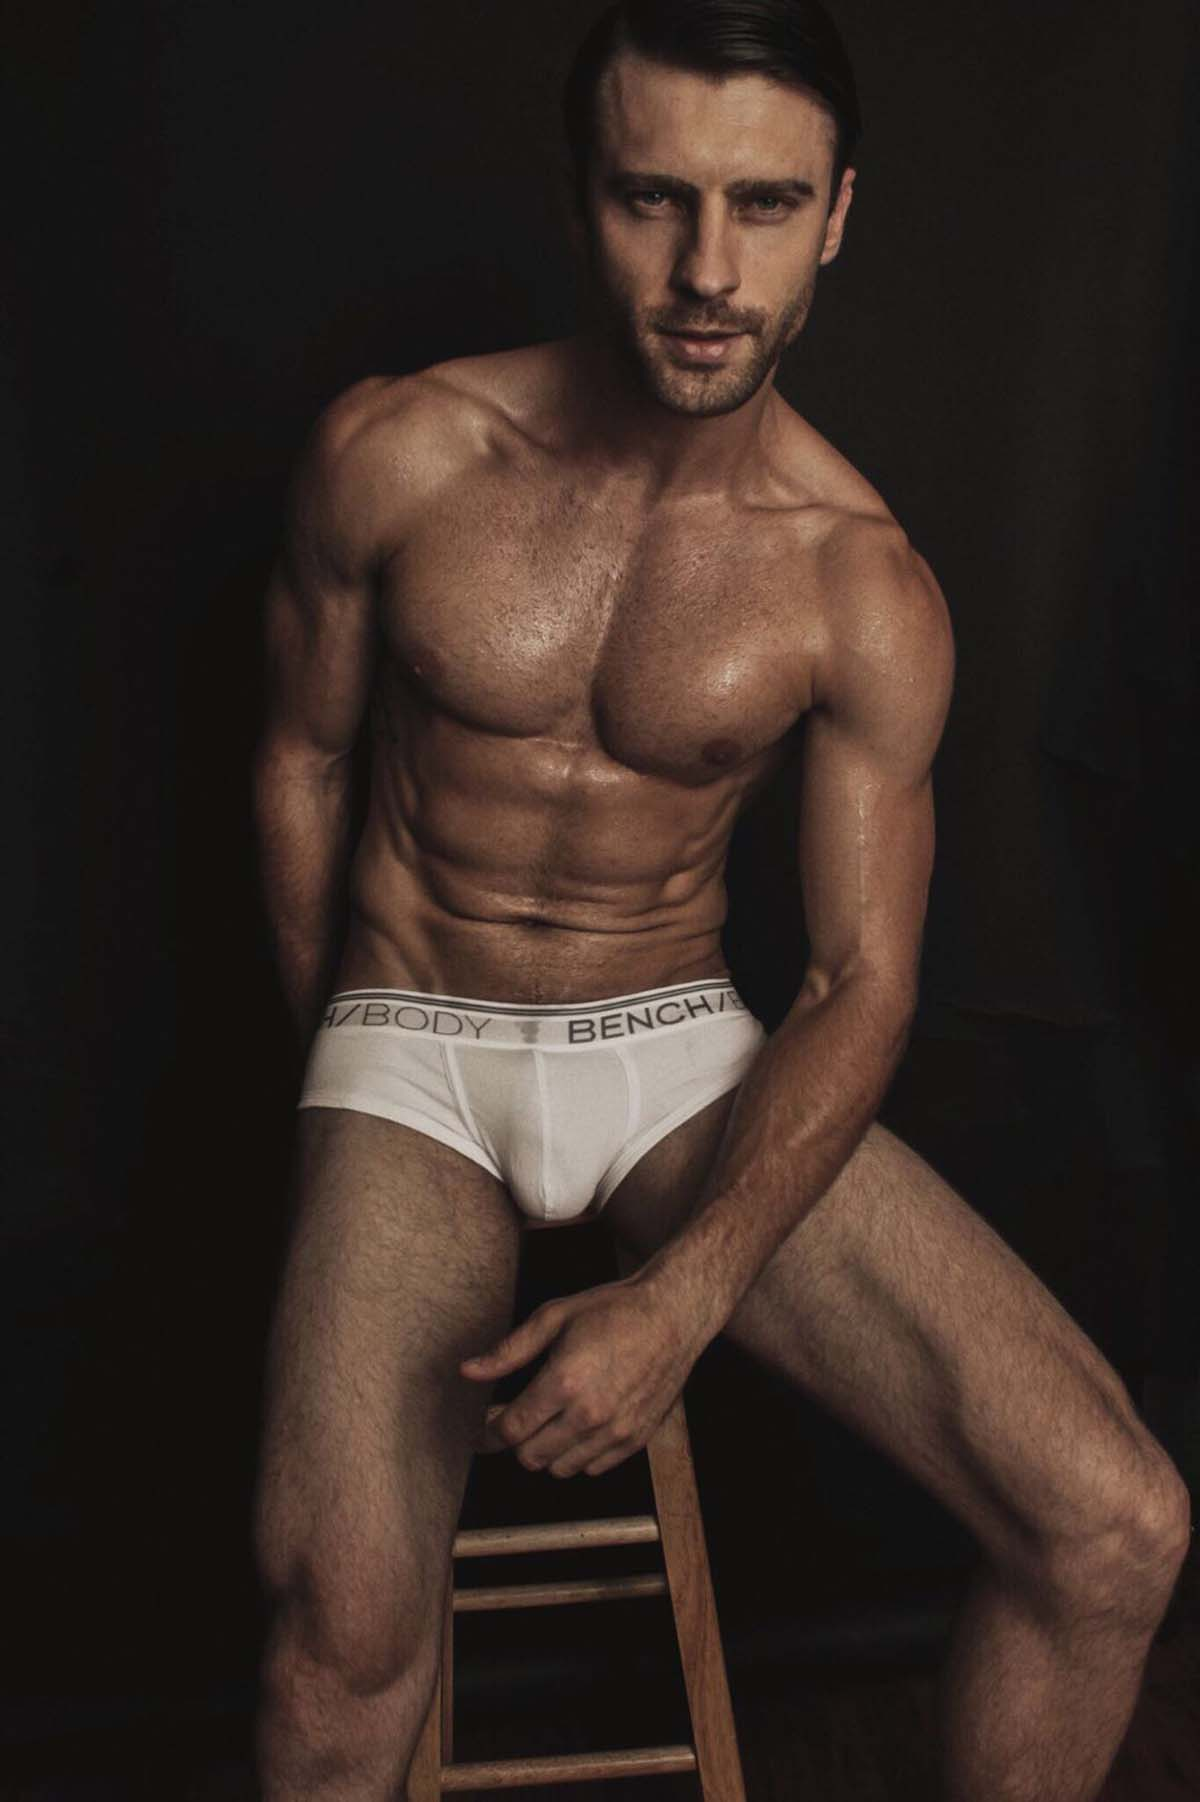 Vinicius Piccoli by Malcolm Joris for Brazilian Male Model